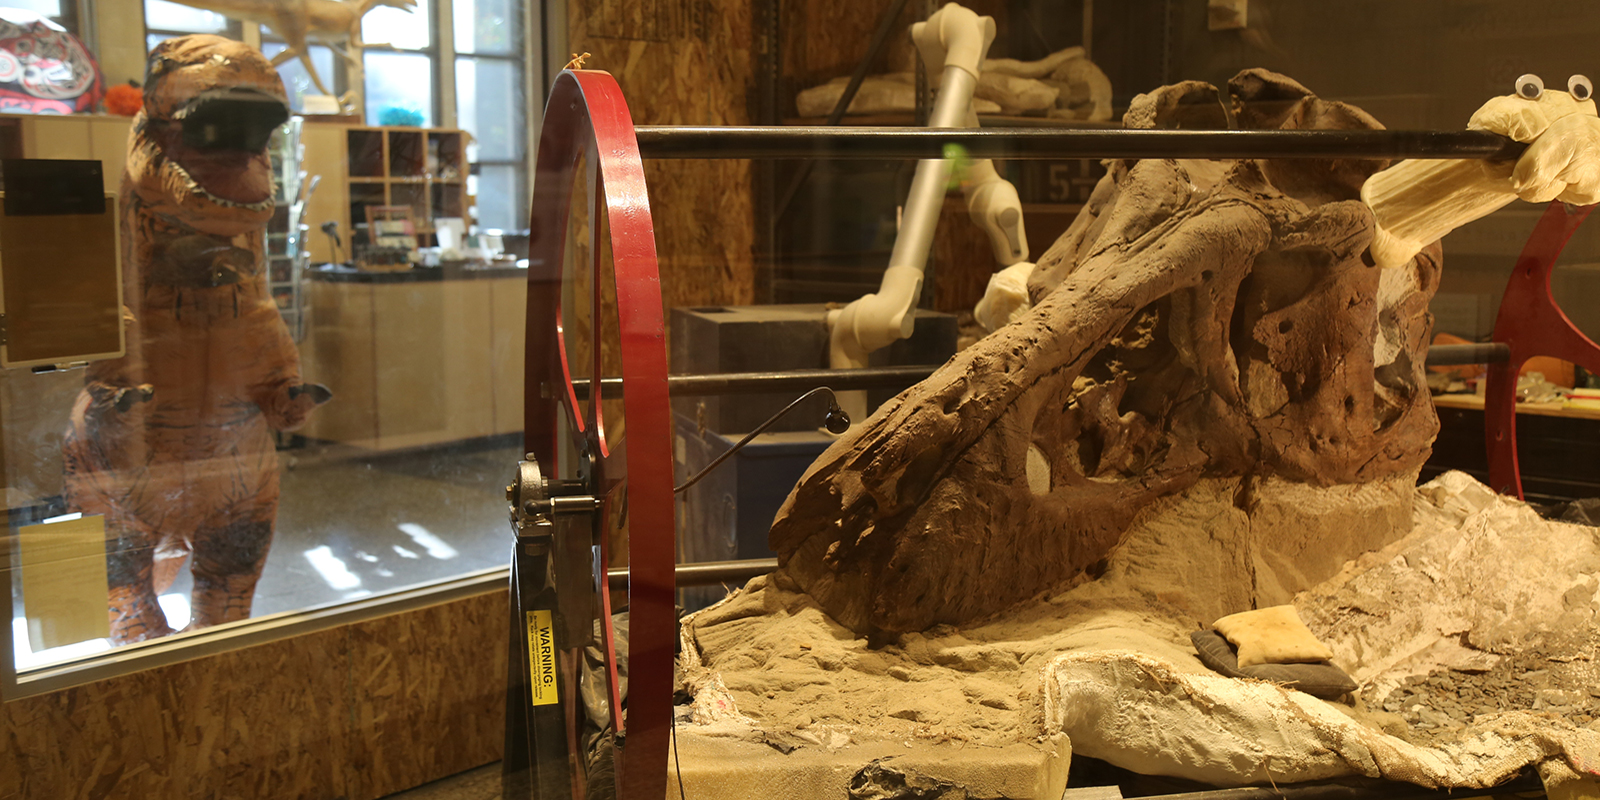 The T. rex skull in the foreground with a person dressed in an inflatable T. rex costume in the background